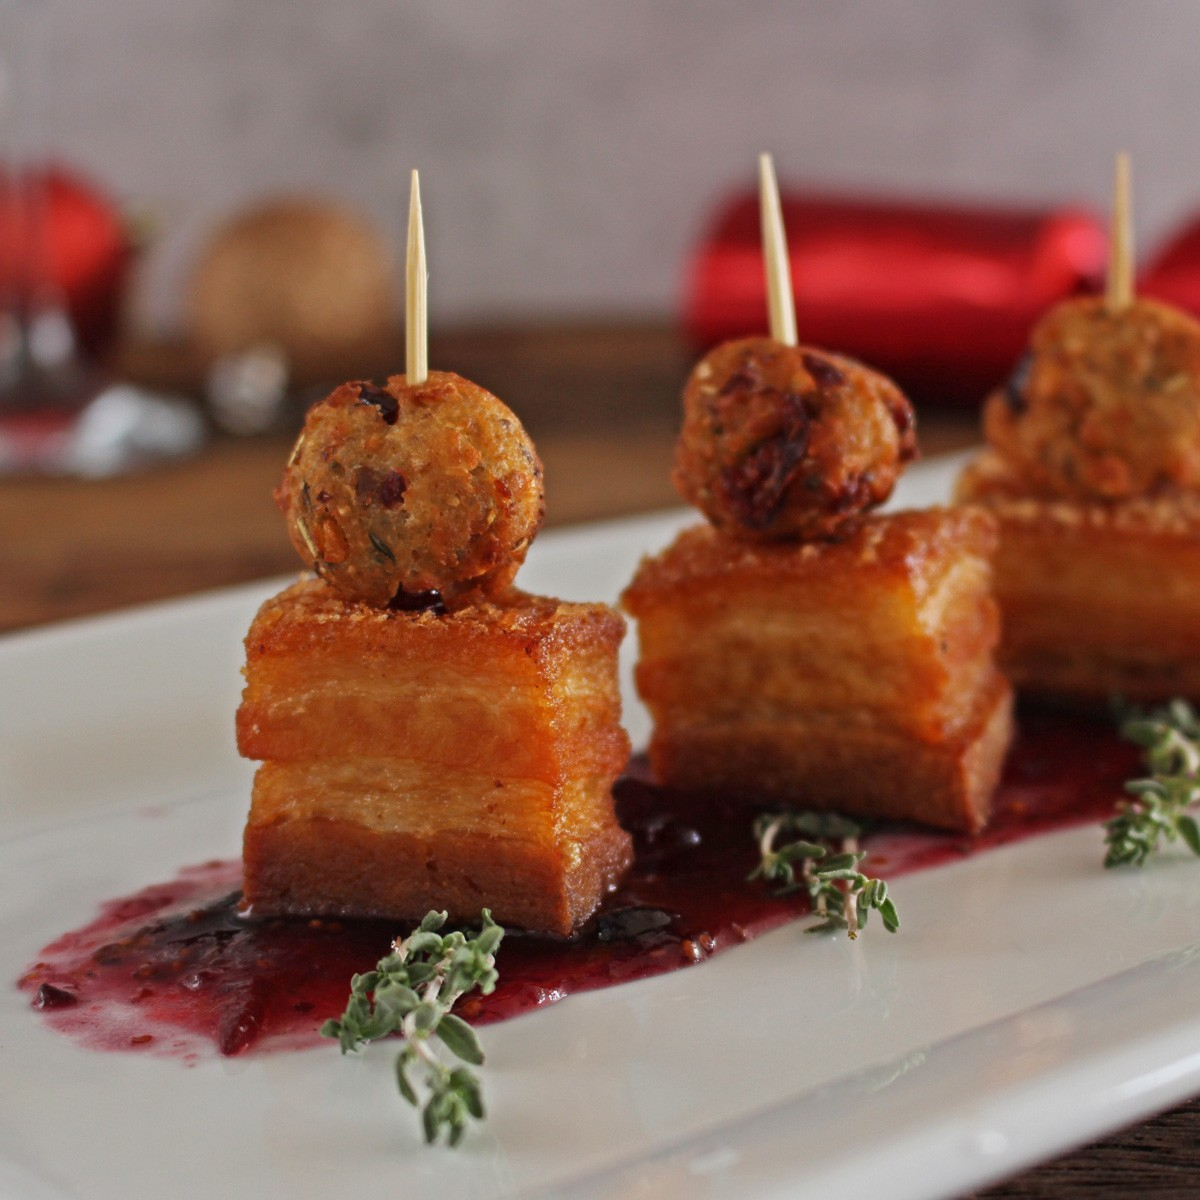 Pork Belly and Stuffing Bites - Three Aussie Farmers Pork Belly